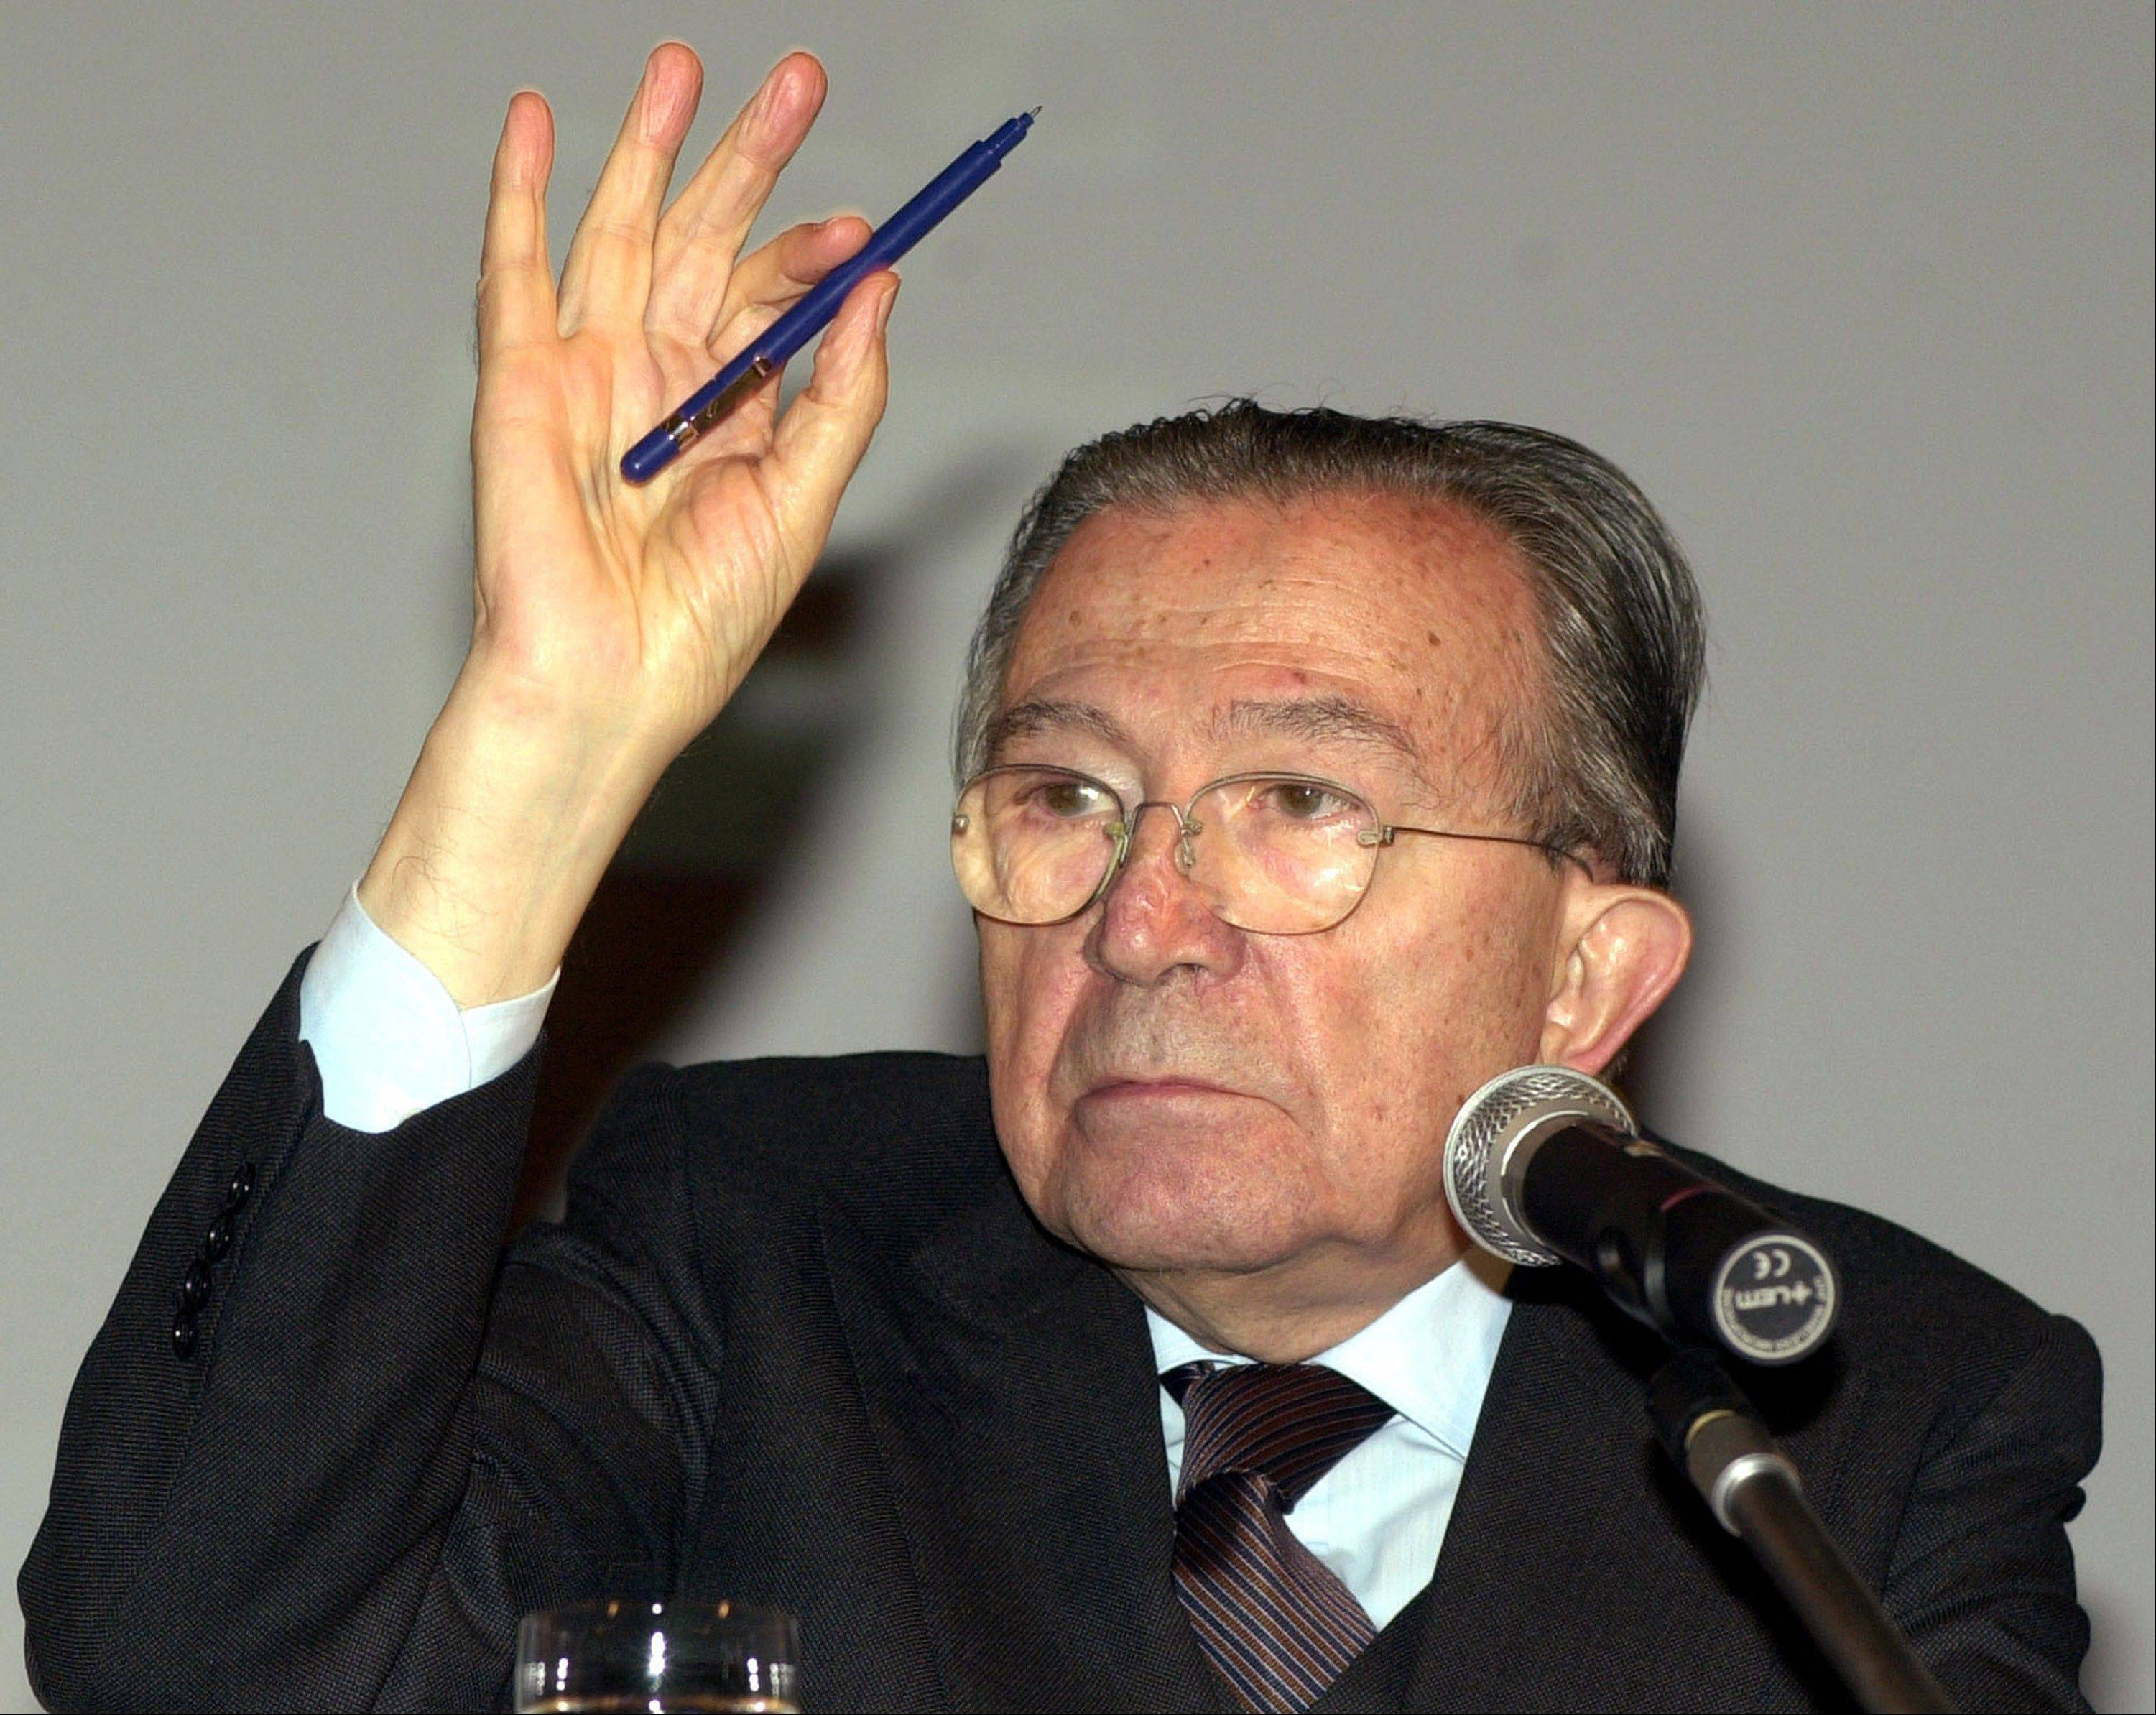 Italian state television says Giulio Andreotti, Italy's former seven-time premier, has died at age 94. At his prime, Andreotti was one of Italy's most powerful men: he helped draft the country's constitution after World War II, sat in parliament for 60 years and served as premier seven times.